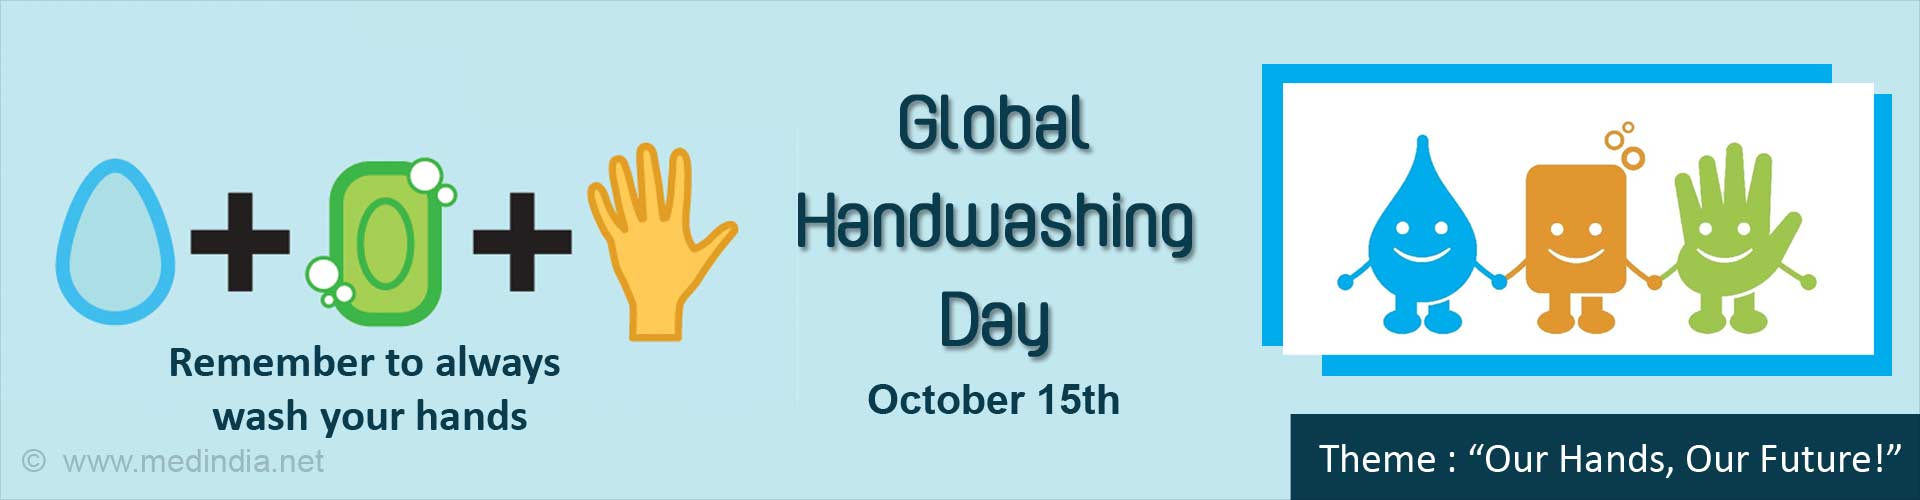 Global Handwashing Day: 'œOur Hands, Our Future!'�